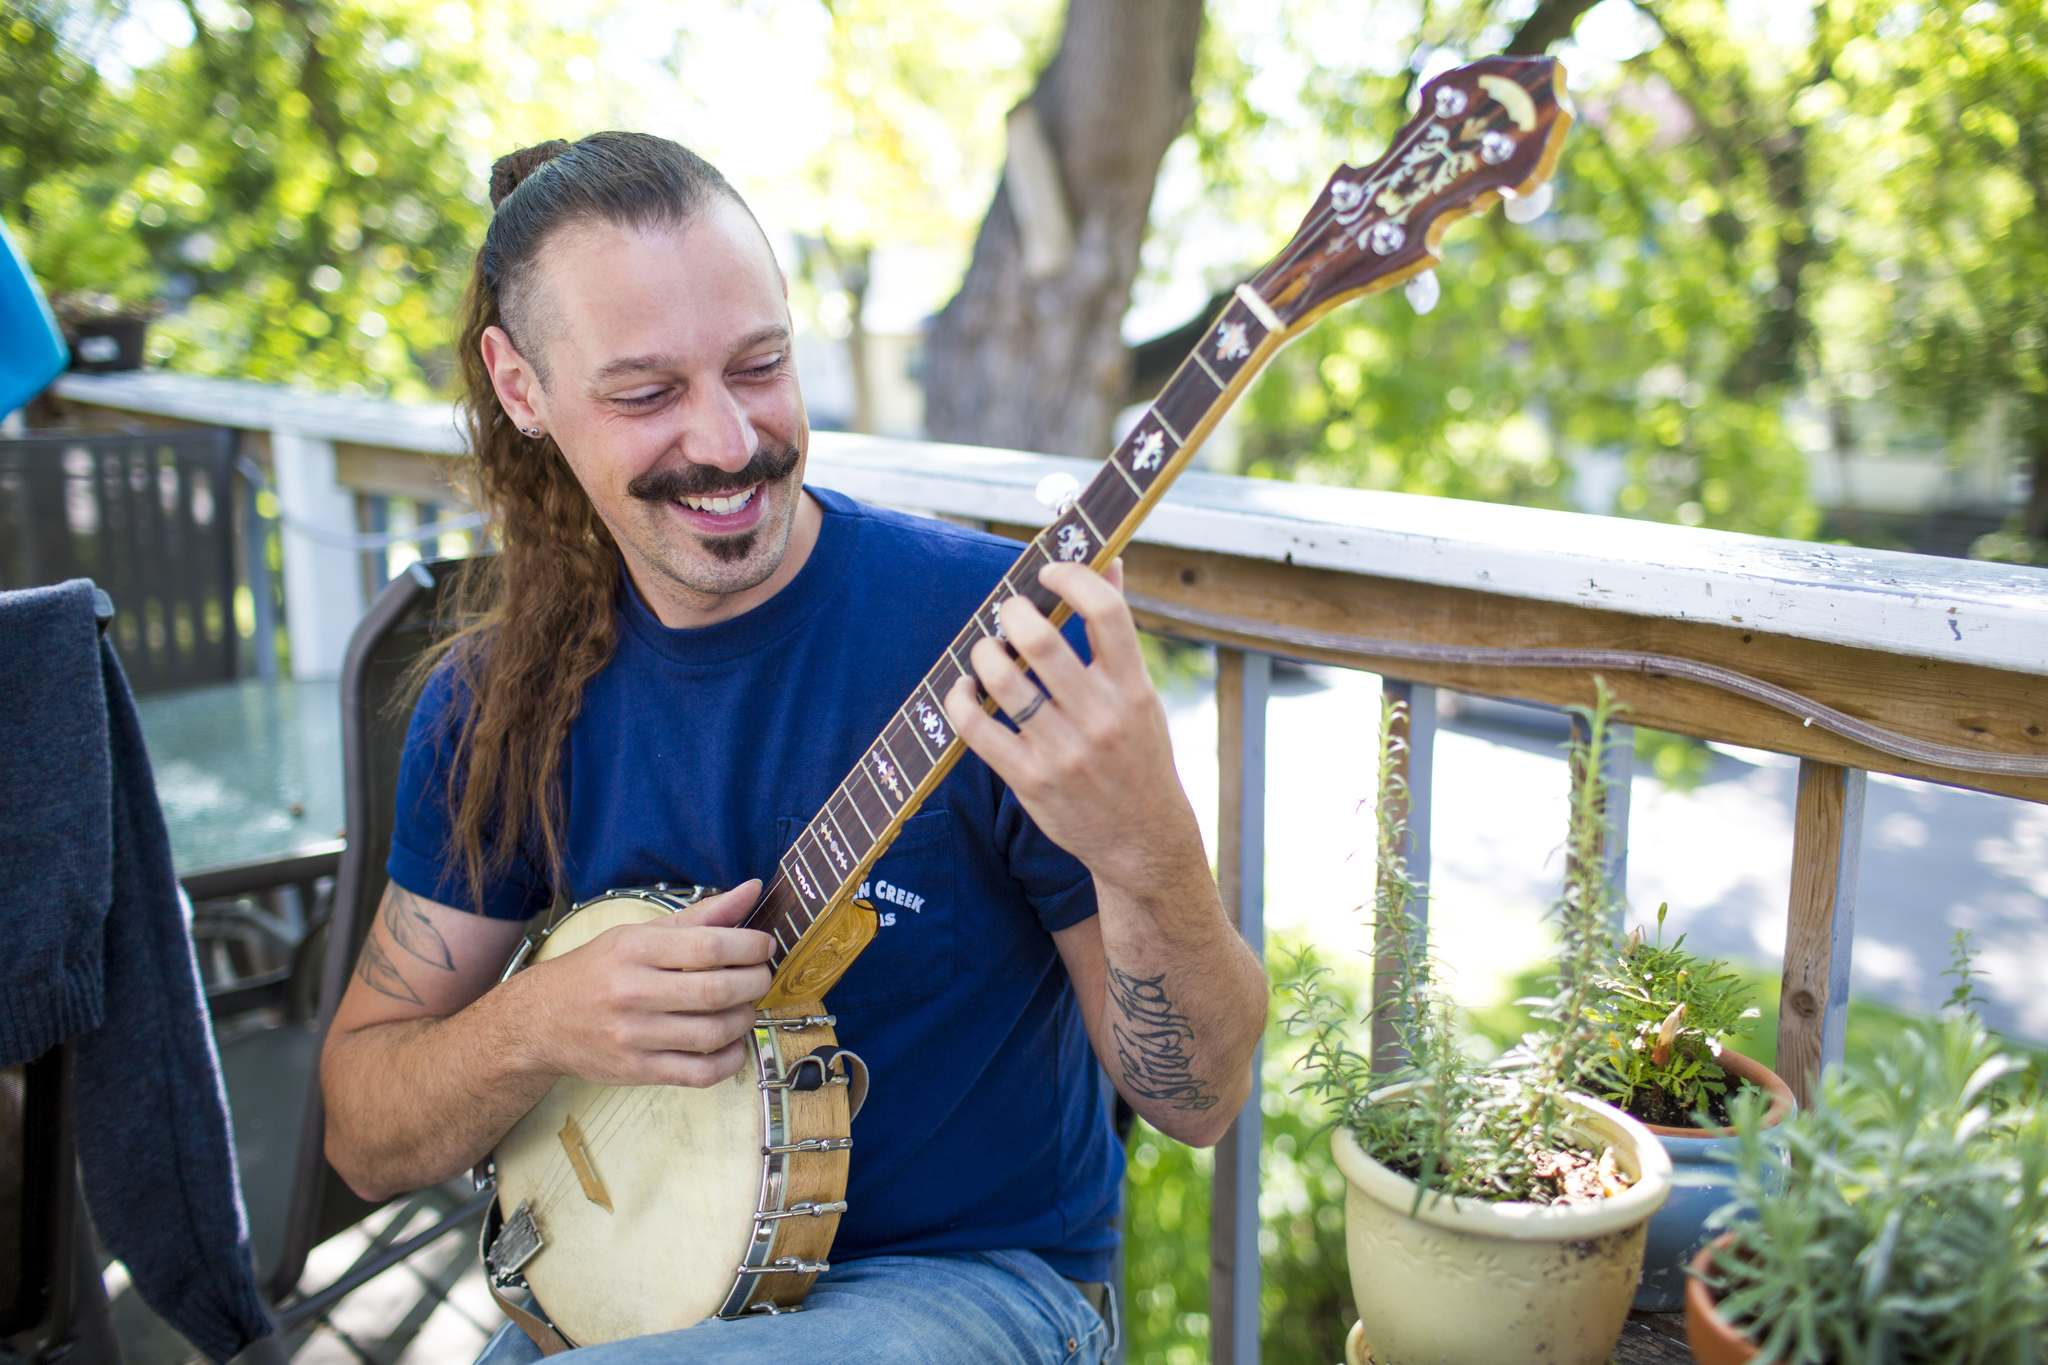 Daniel Péloquin-Hopfner says learning the banjo is counterintuitive to playing the guitar. (Mikaela MacKenzie / Winnipeg Free Press)